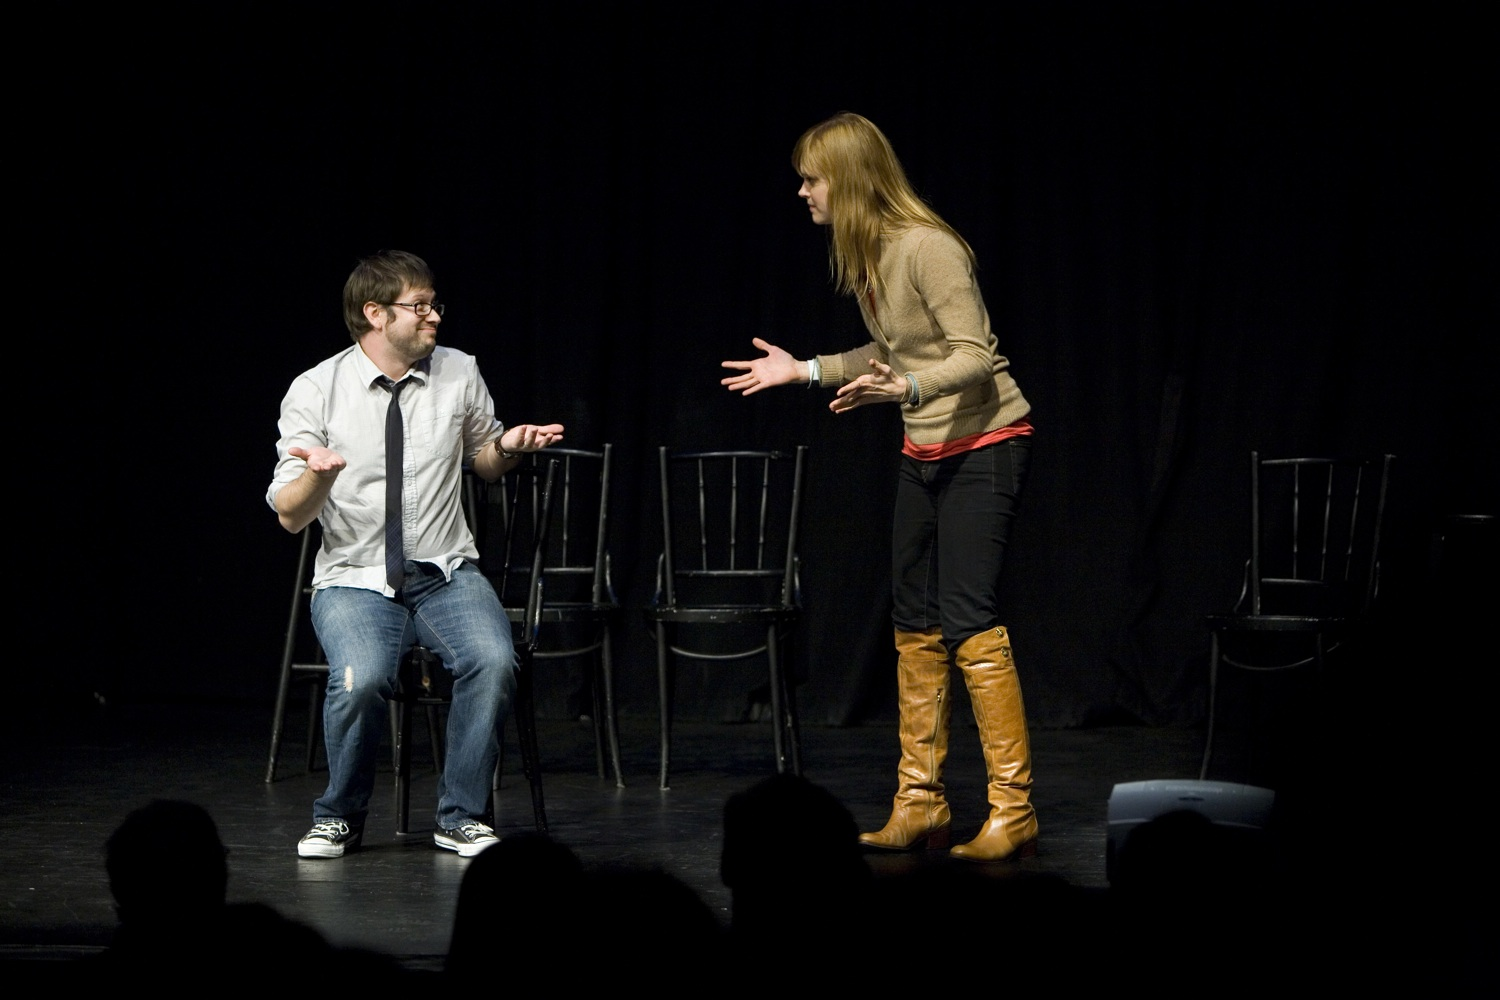 Theme Park with Cole Stratton and Janet Varney at SF Sketchfest